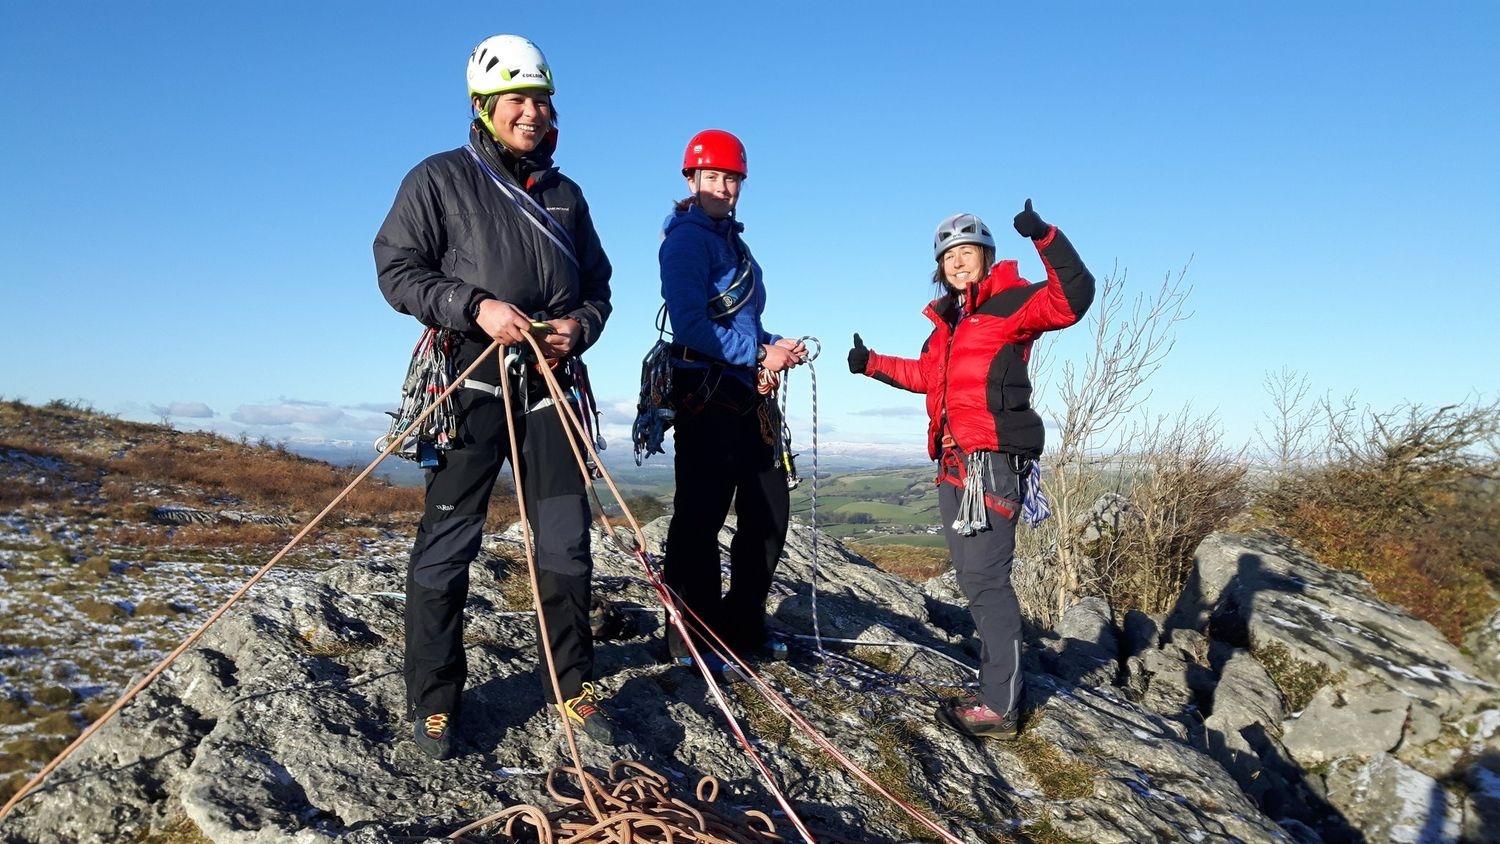 Setting up a belay at the top of a route on a Rock Climbing Instructor course - Chris Ensoll Mountain Guide